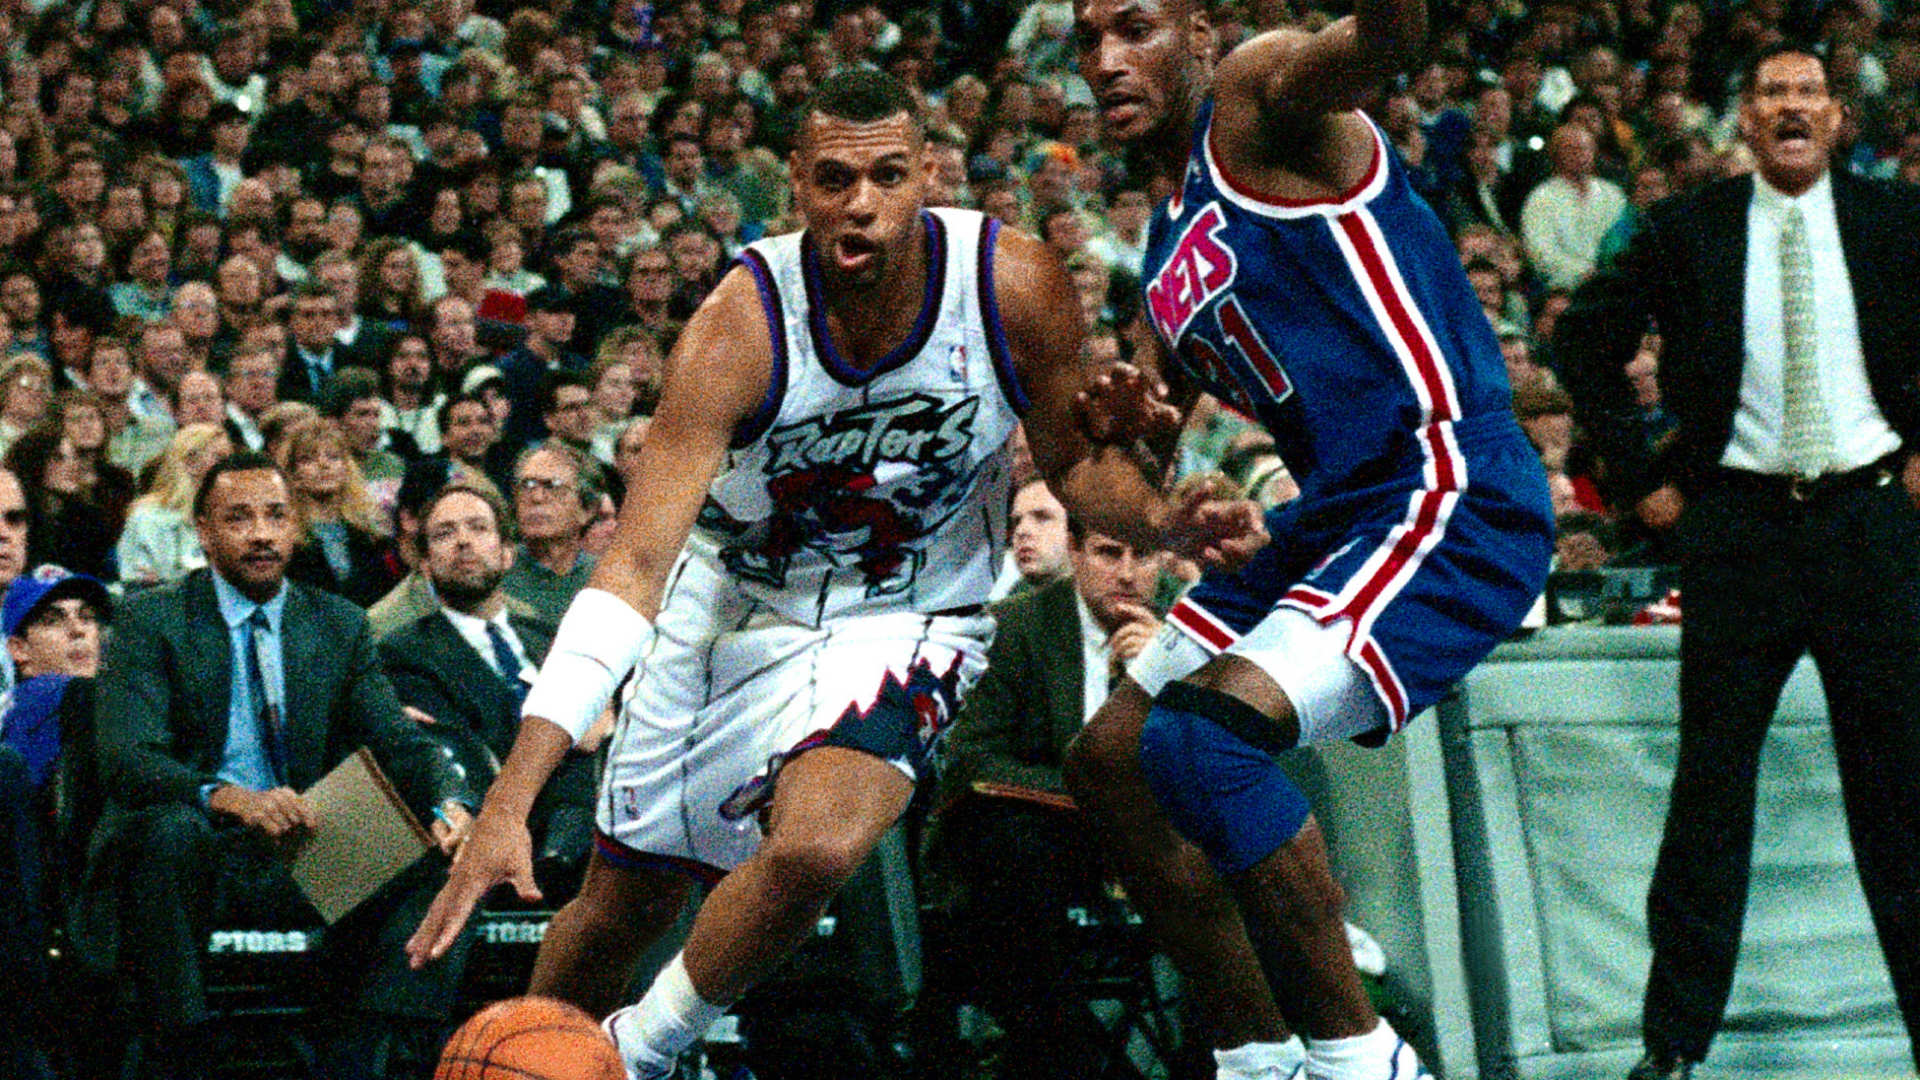 On This Date In 1995 The Toronto Raptors Play Their First